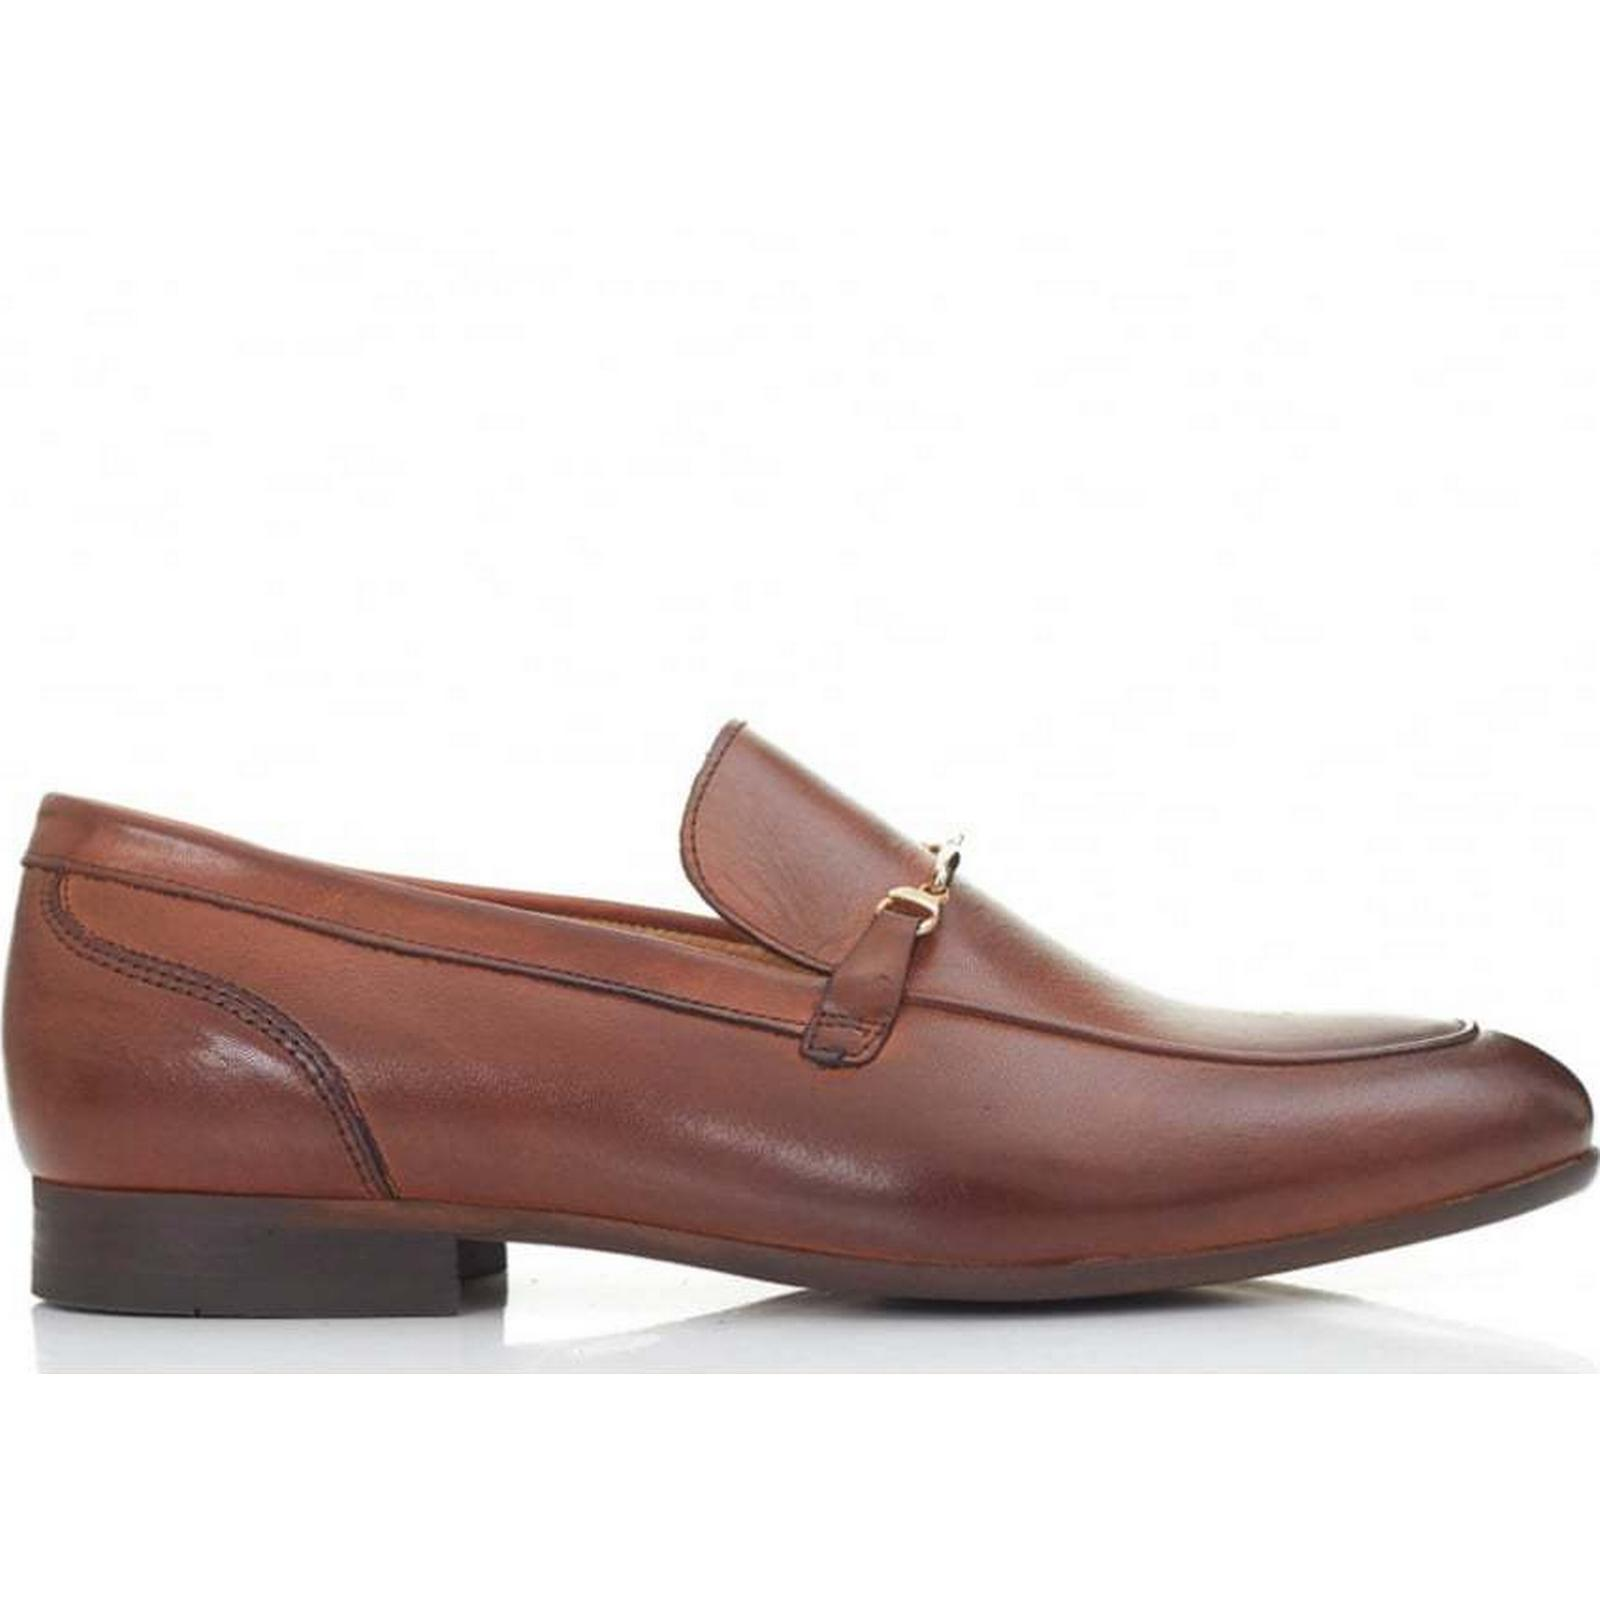 H By Hudson Colour: Navarre Calf Snaffle Loafers Colour: Hudson TAN, Size: 11 a76b52